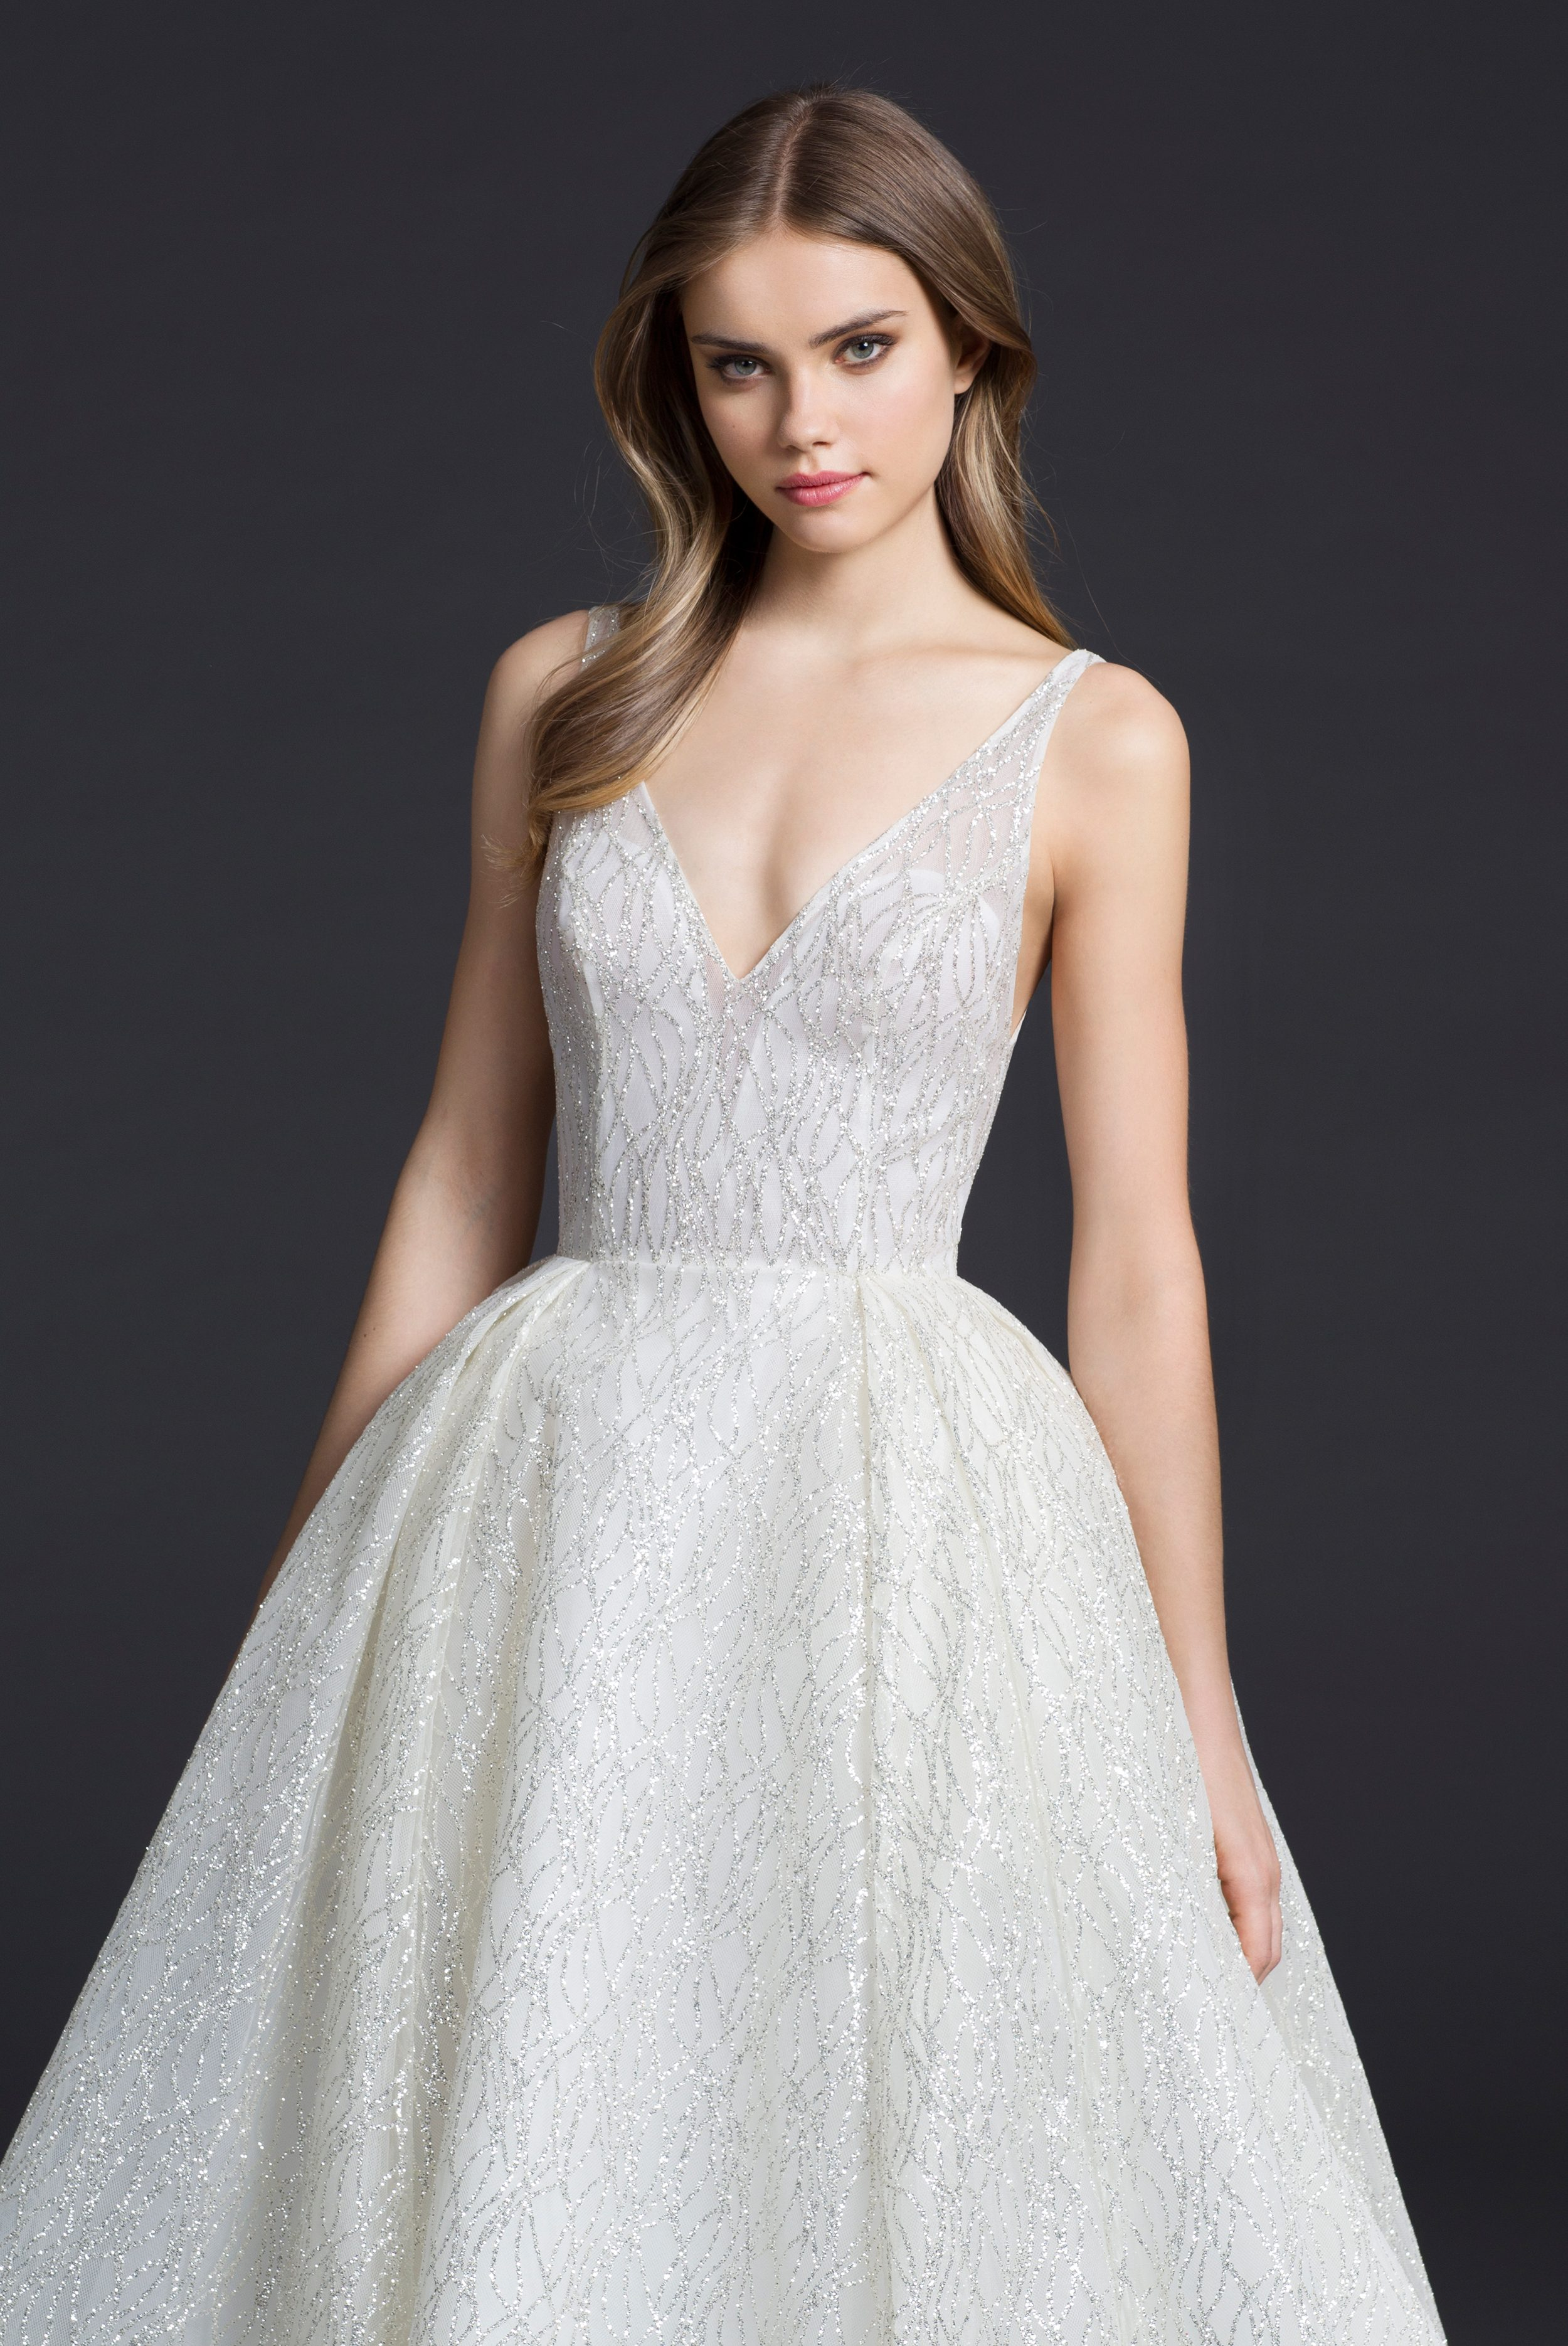 New wedding gowns from lazaro arrive at stardust for Wedding gowns and dresses